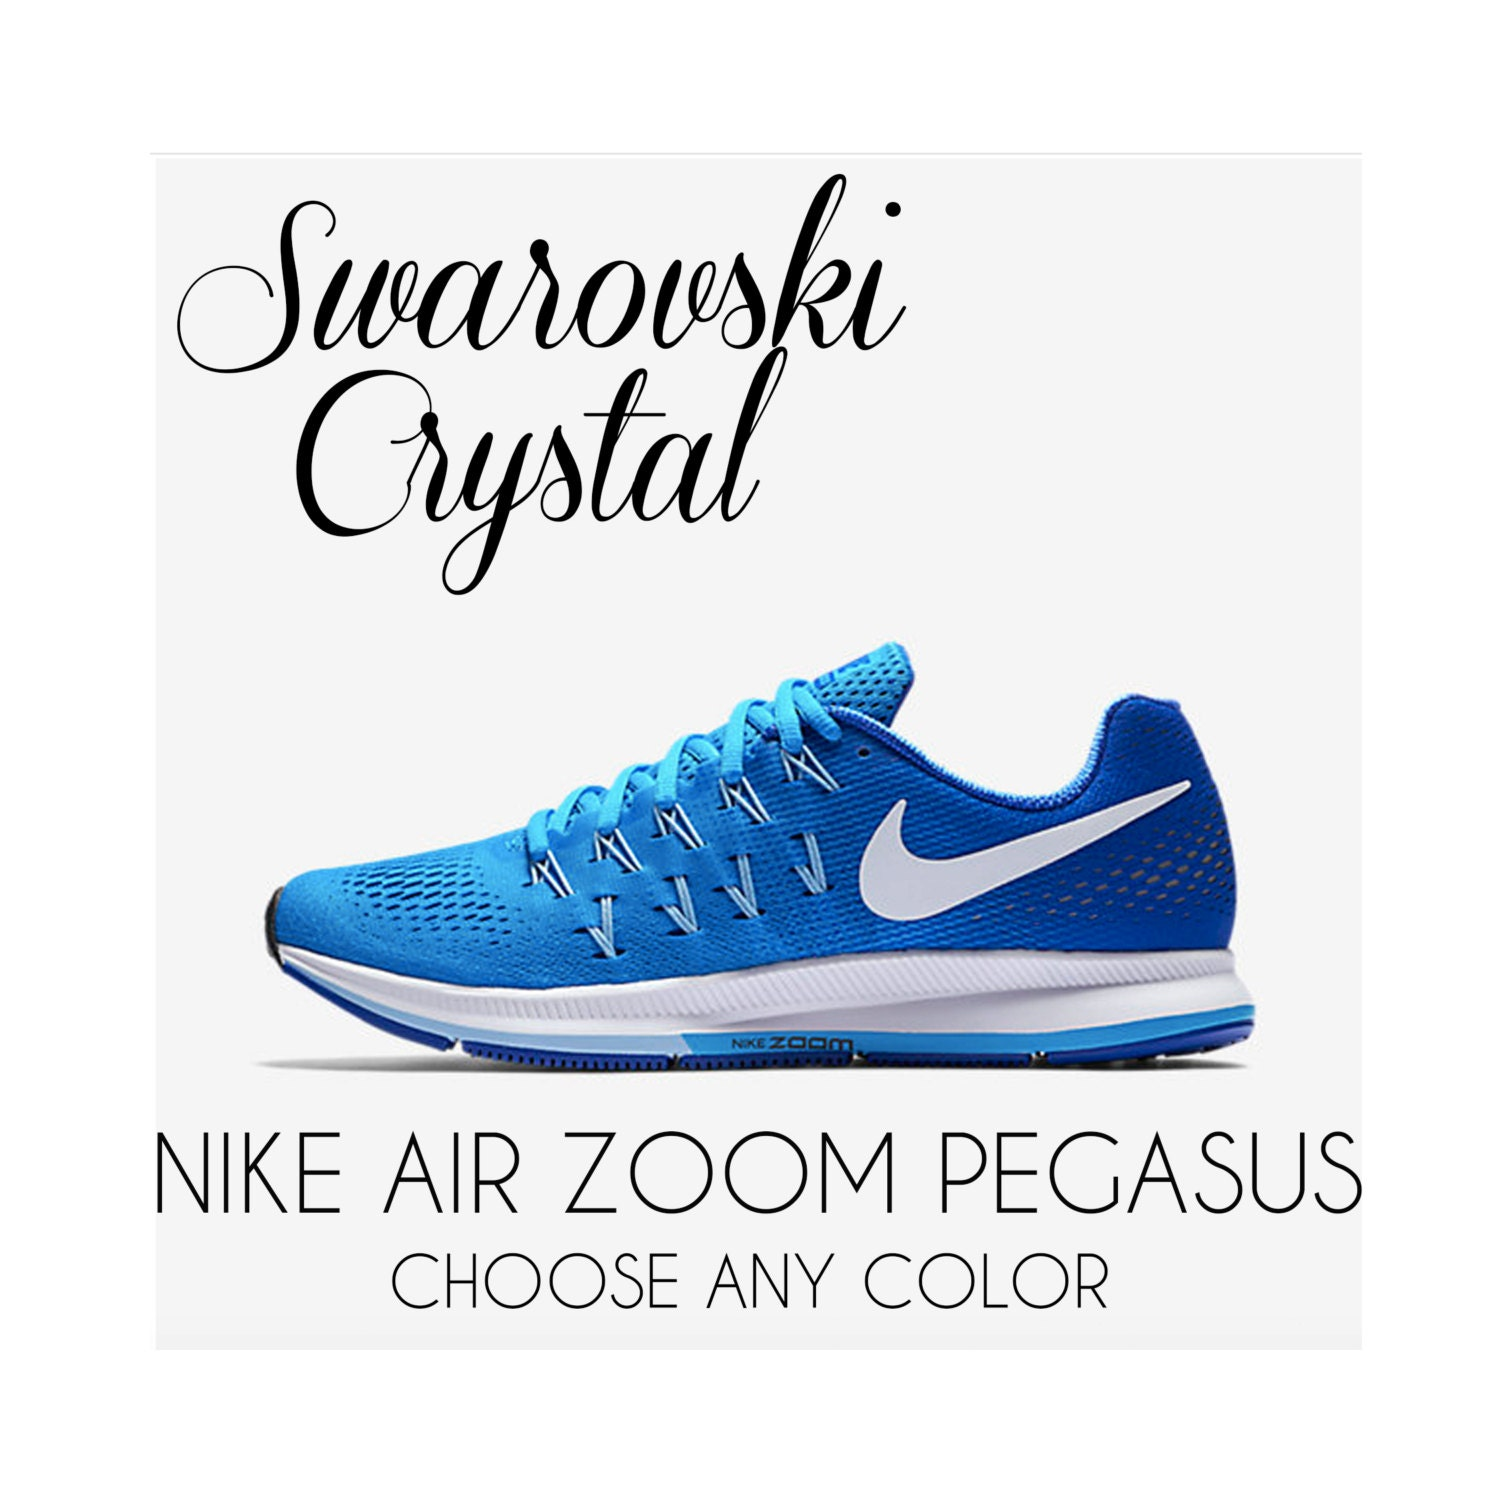 high-quality Swarovski Crystal Nike Air Zoom Pegasus 33 by CrystalsAndCaviar df40be223a